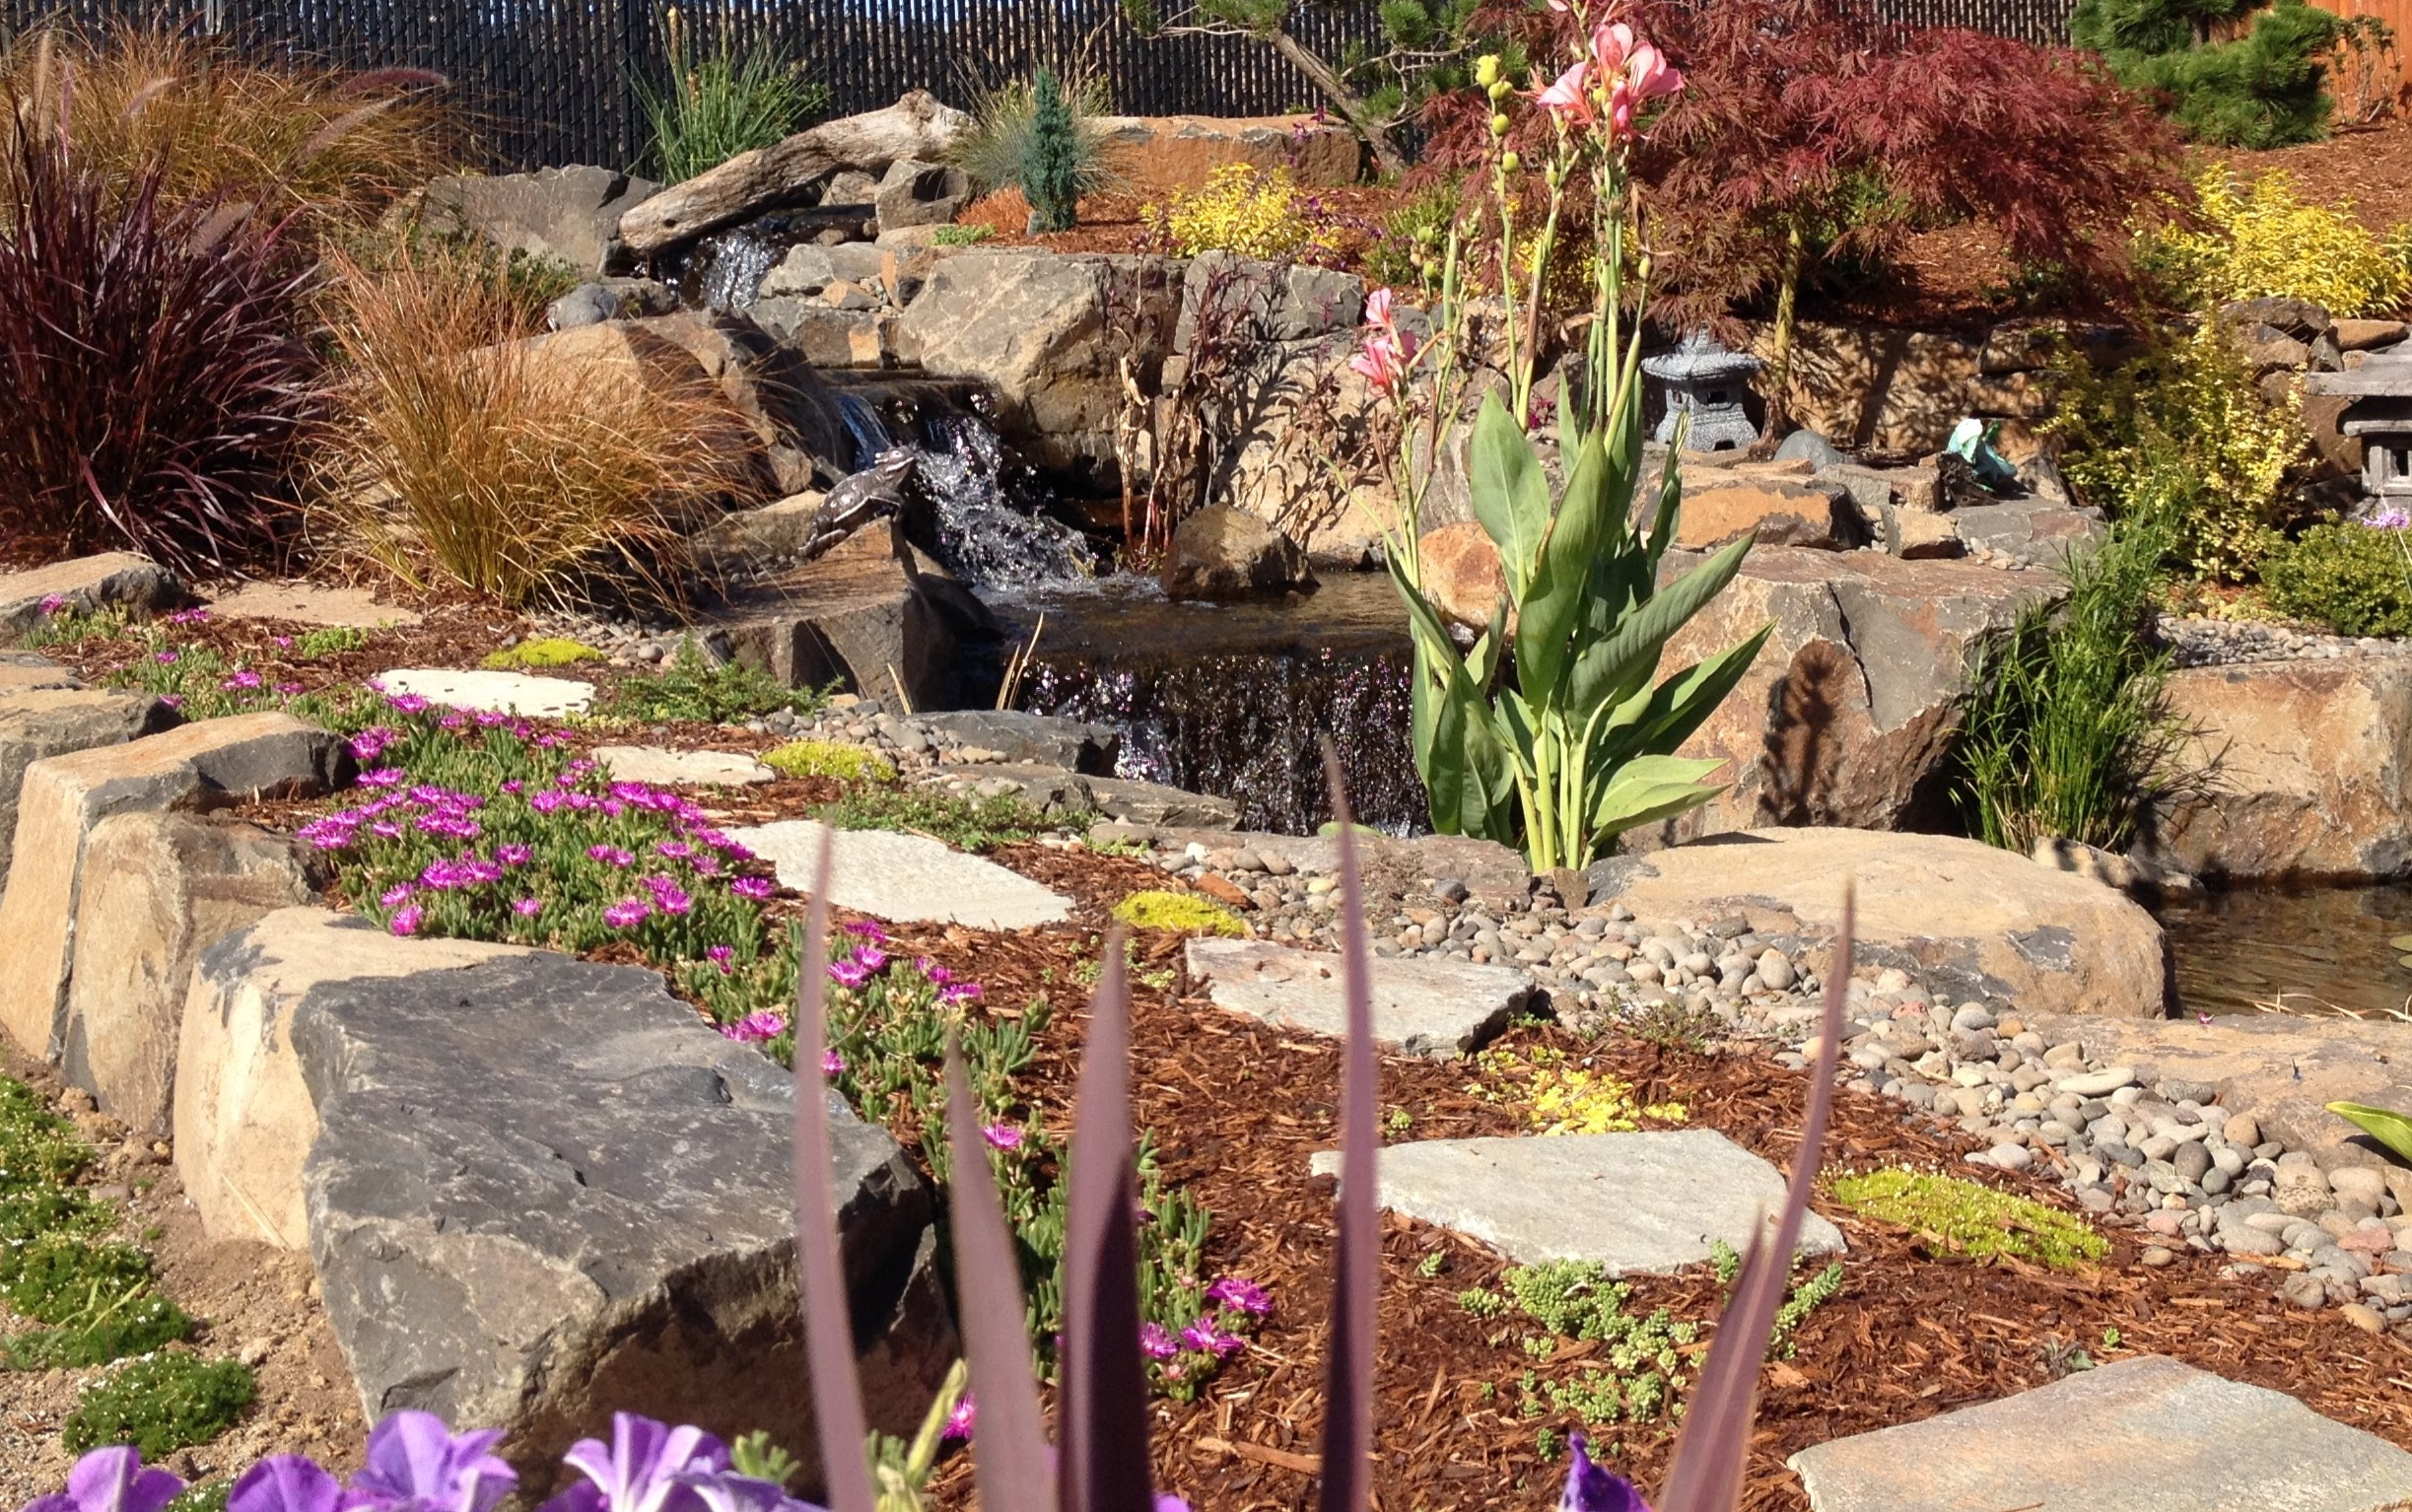 Plants and Gardens - Designing and planting a new garden, remodeling an older garden, or pruning trees and shrubs; we do it all. From eco-lawns and lawn removal to precise trimming of fruit trees, we can meet your landscaping needs.